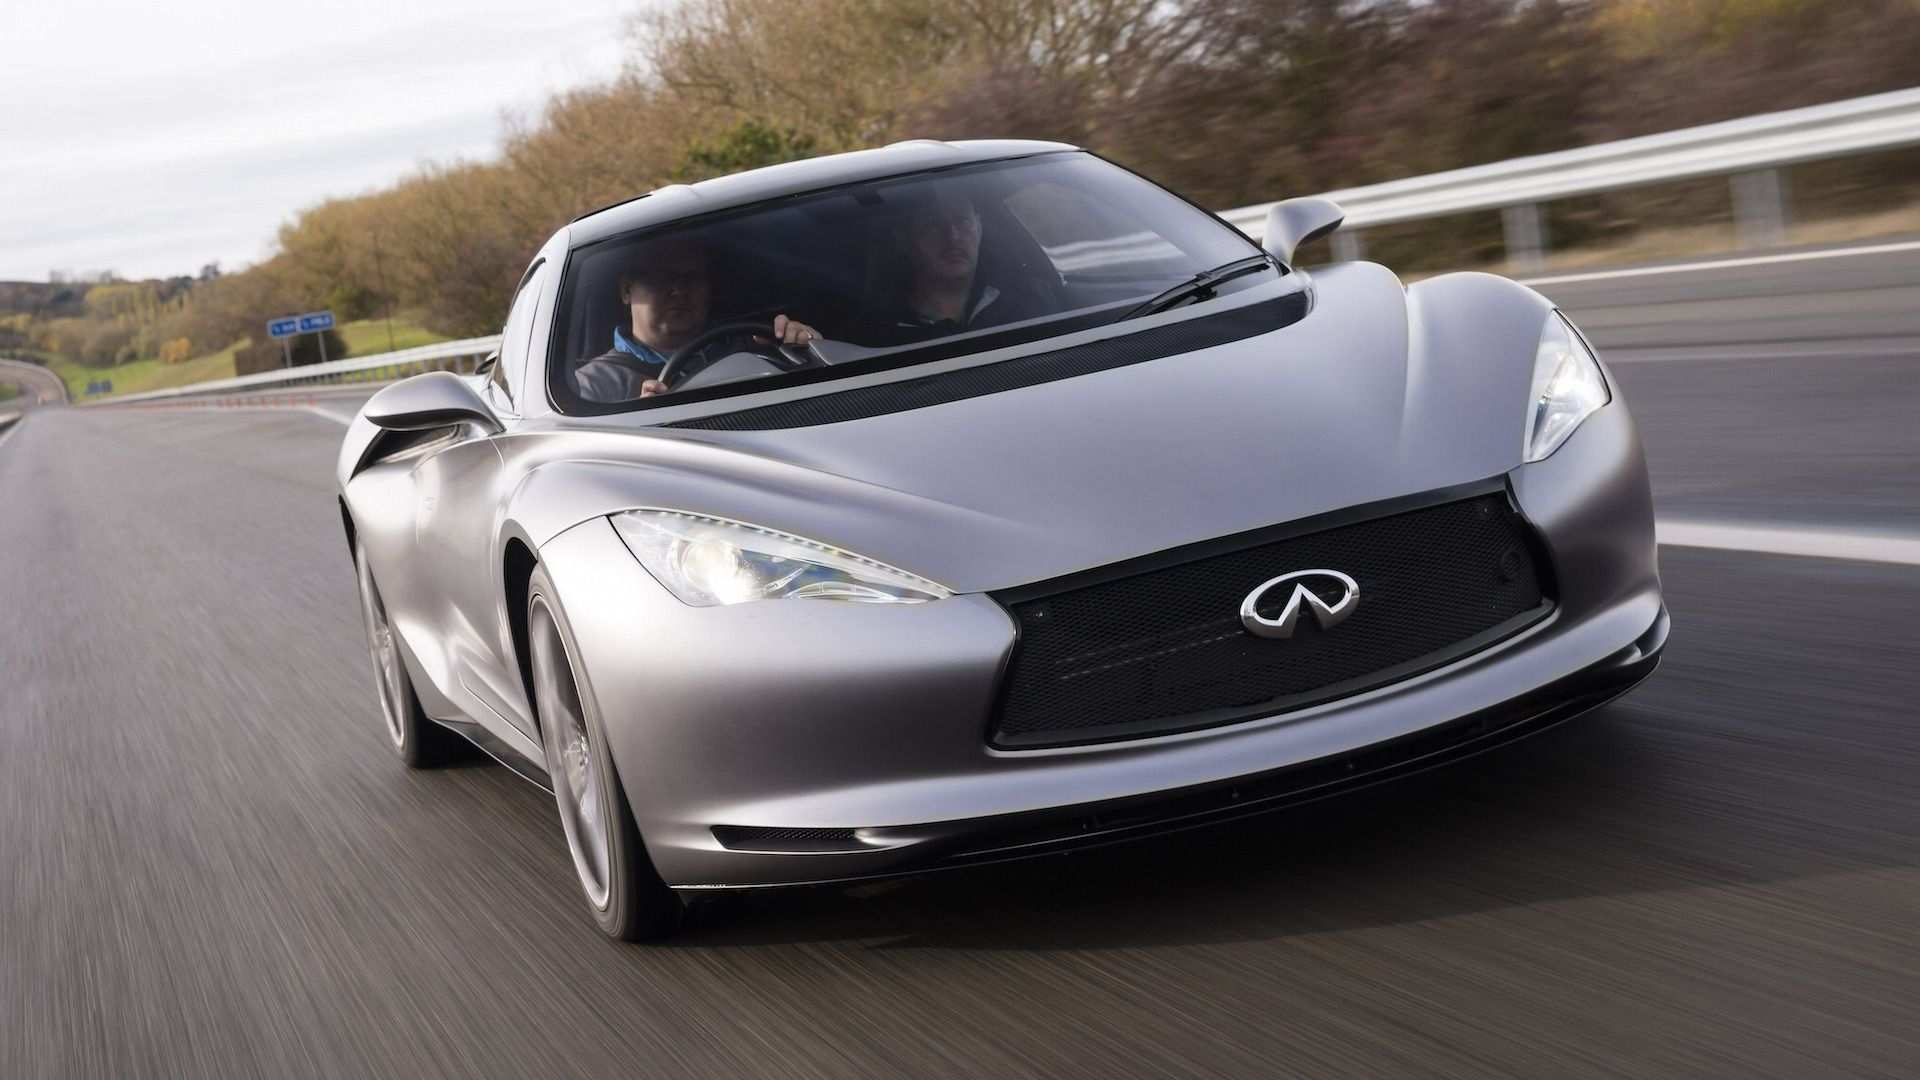 71 New New Infiniti Concept Car 2019 Redesign Style for New Infiniti Concept Car 2019 Redesign